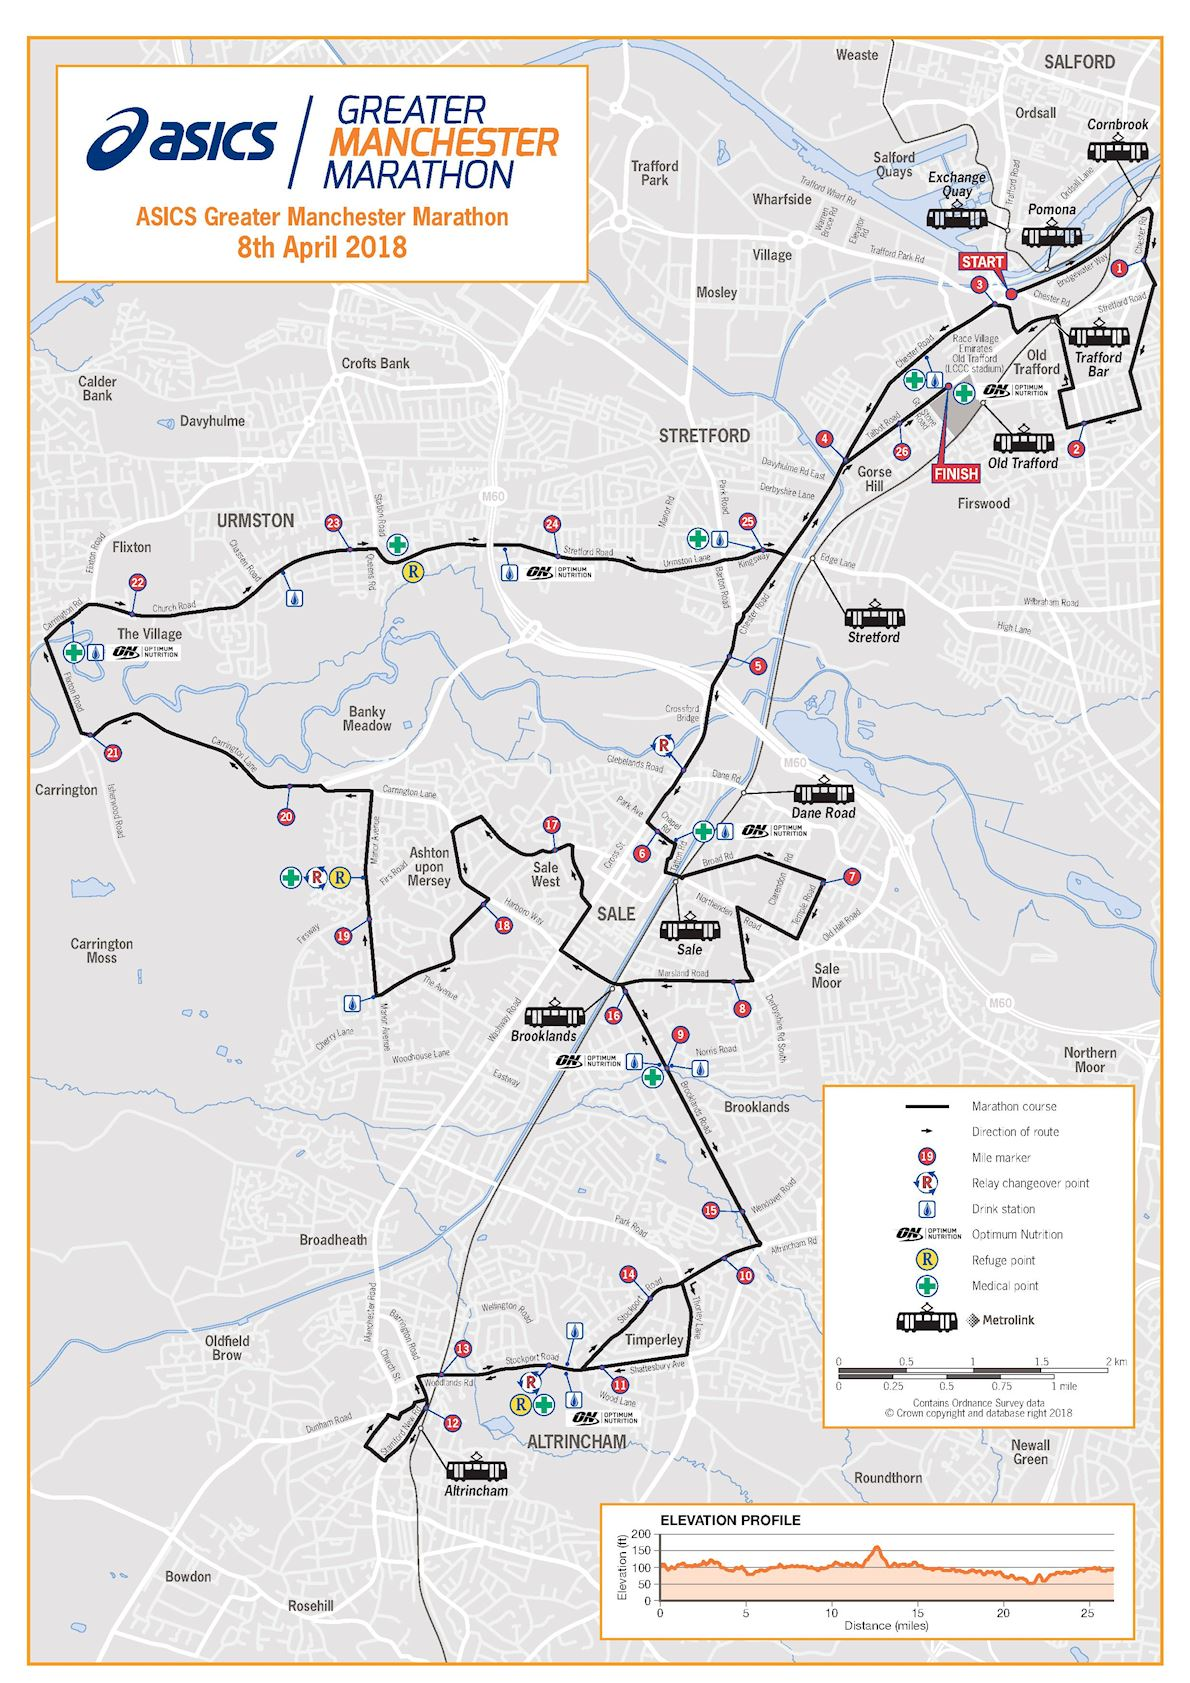 ASICS Greater Manchester Marathon | World\'s Marathons